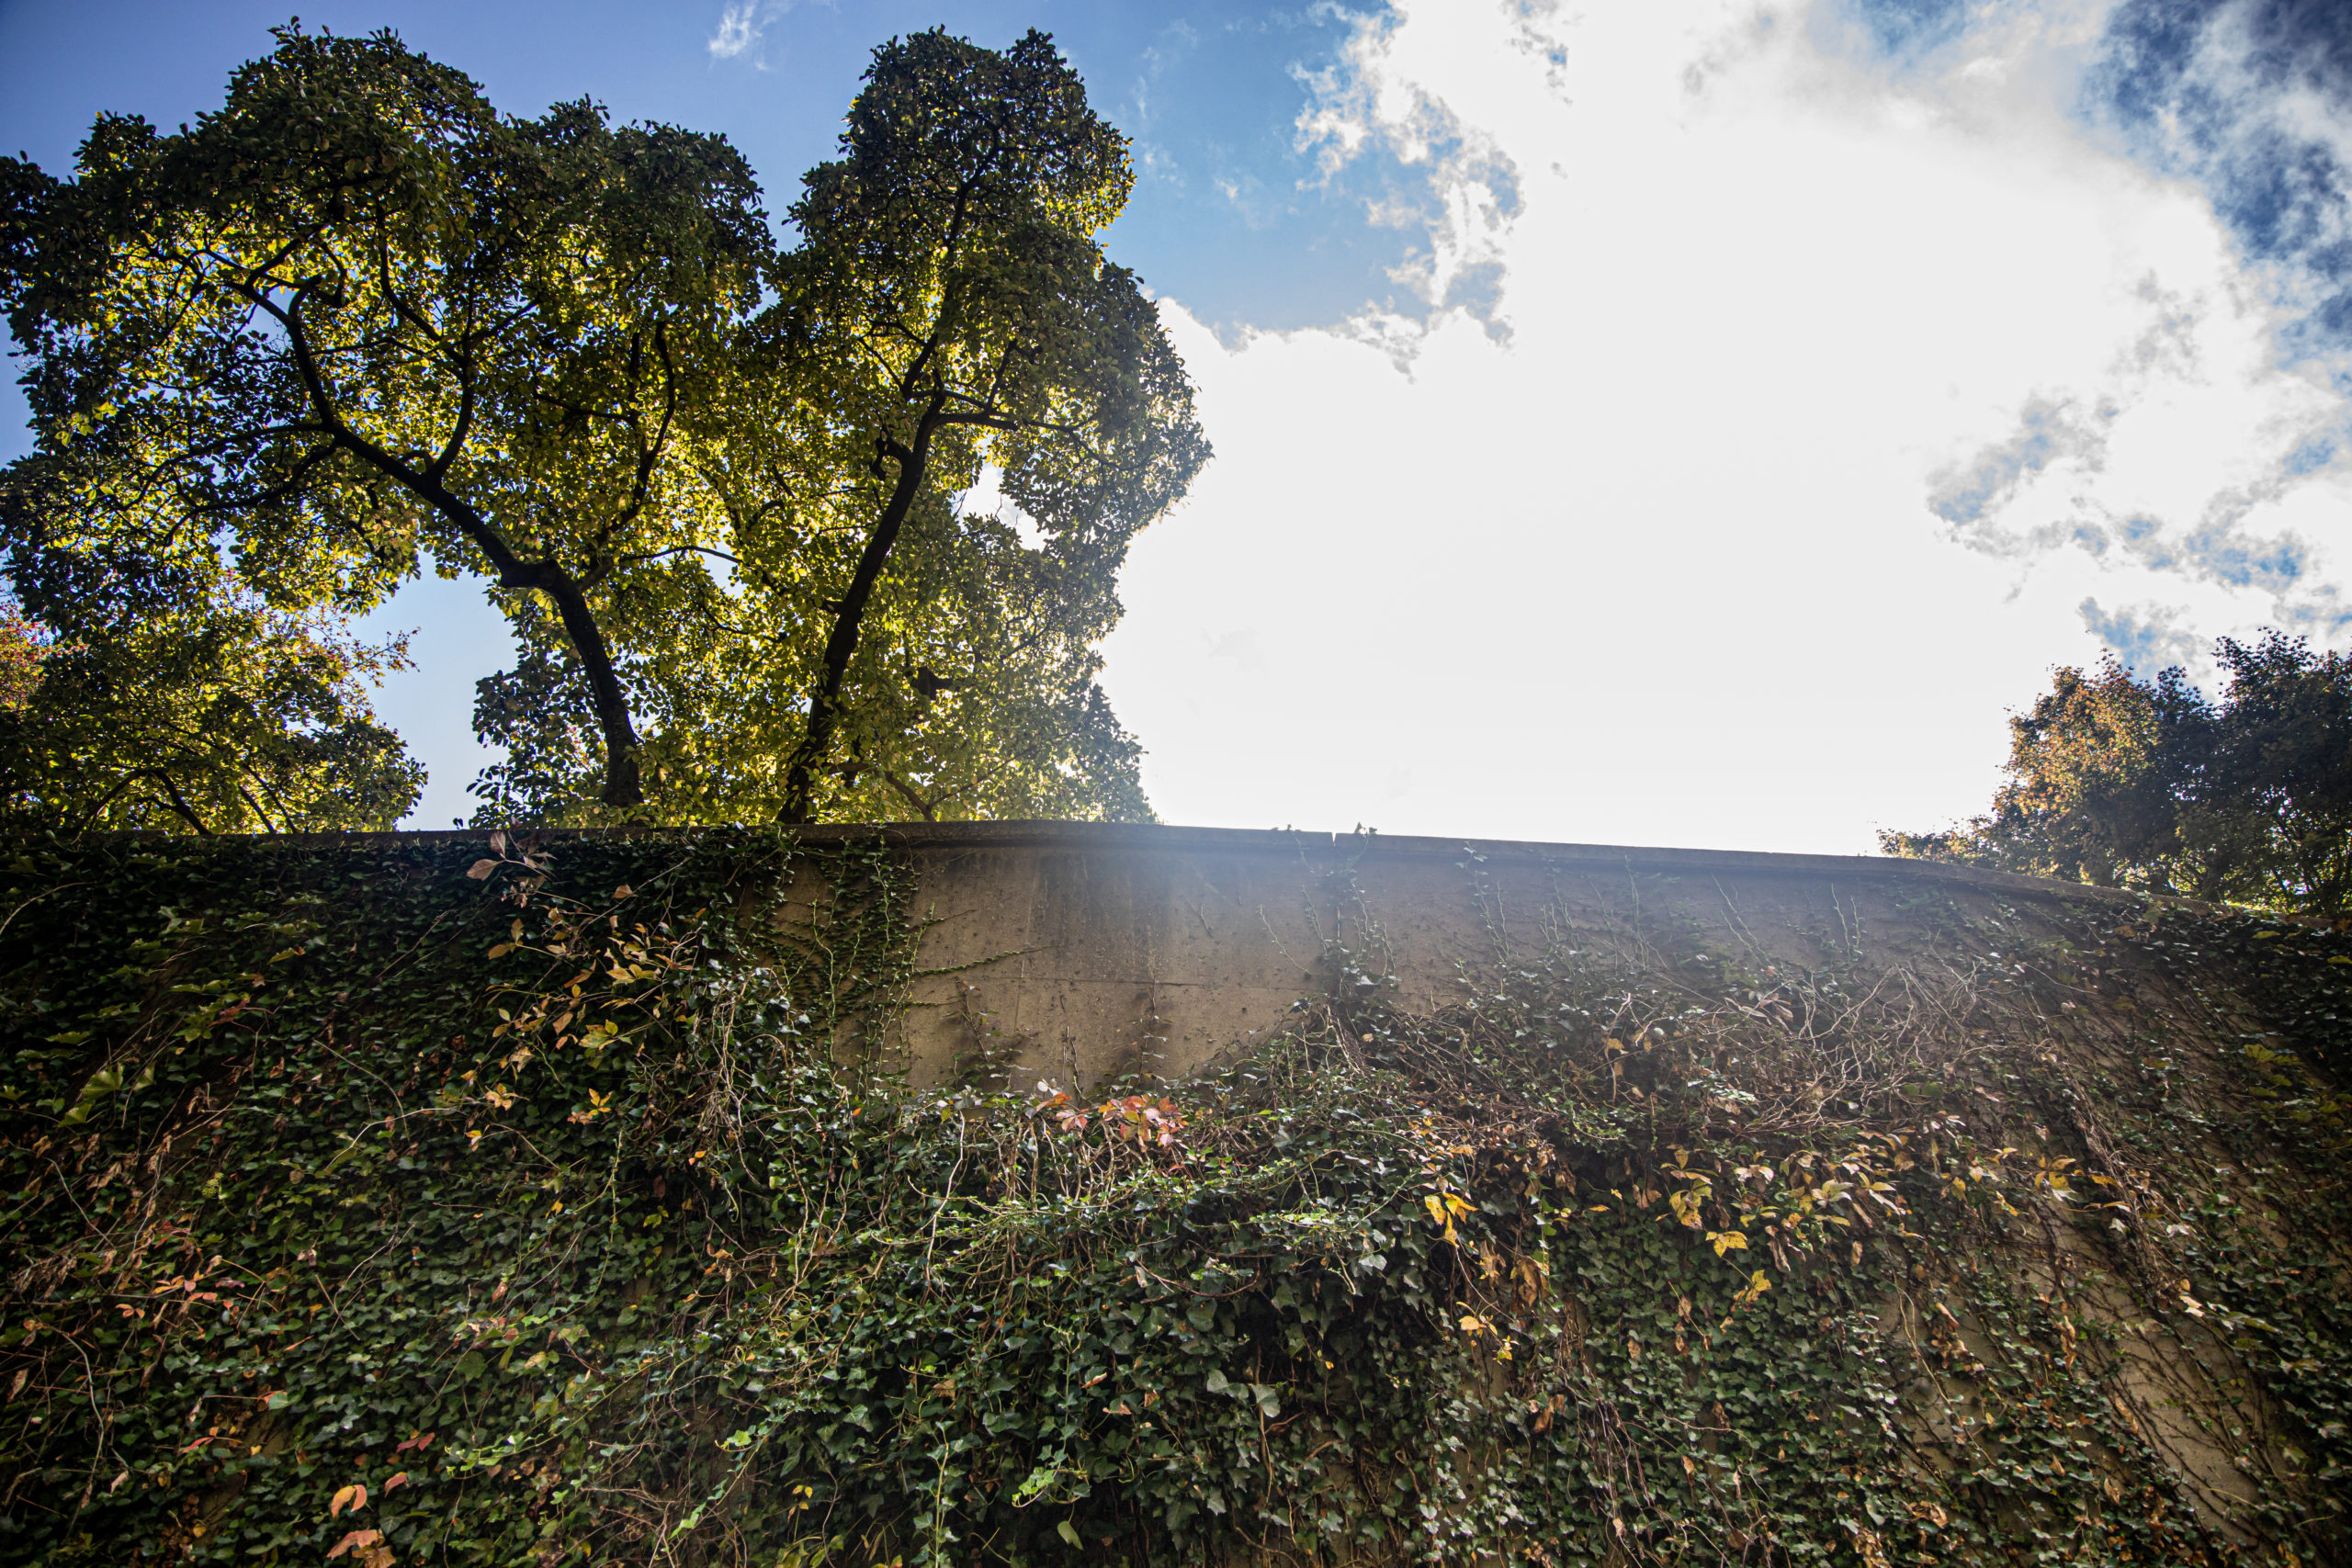 A retaining wall viewed from the bottom angle towrads up, with the sun shinning right on the edge of the wall from mid point to the right side of th photo, which is covered in vines, and a tree peering over the wall on the far left.